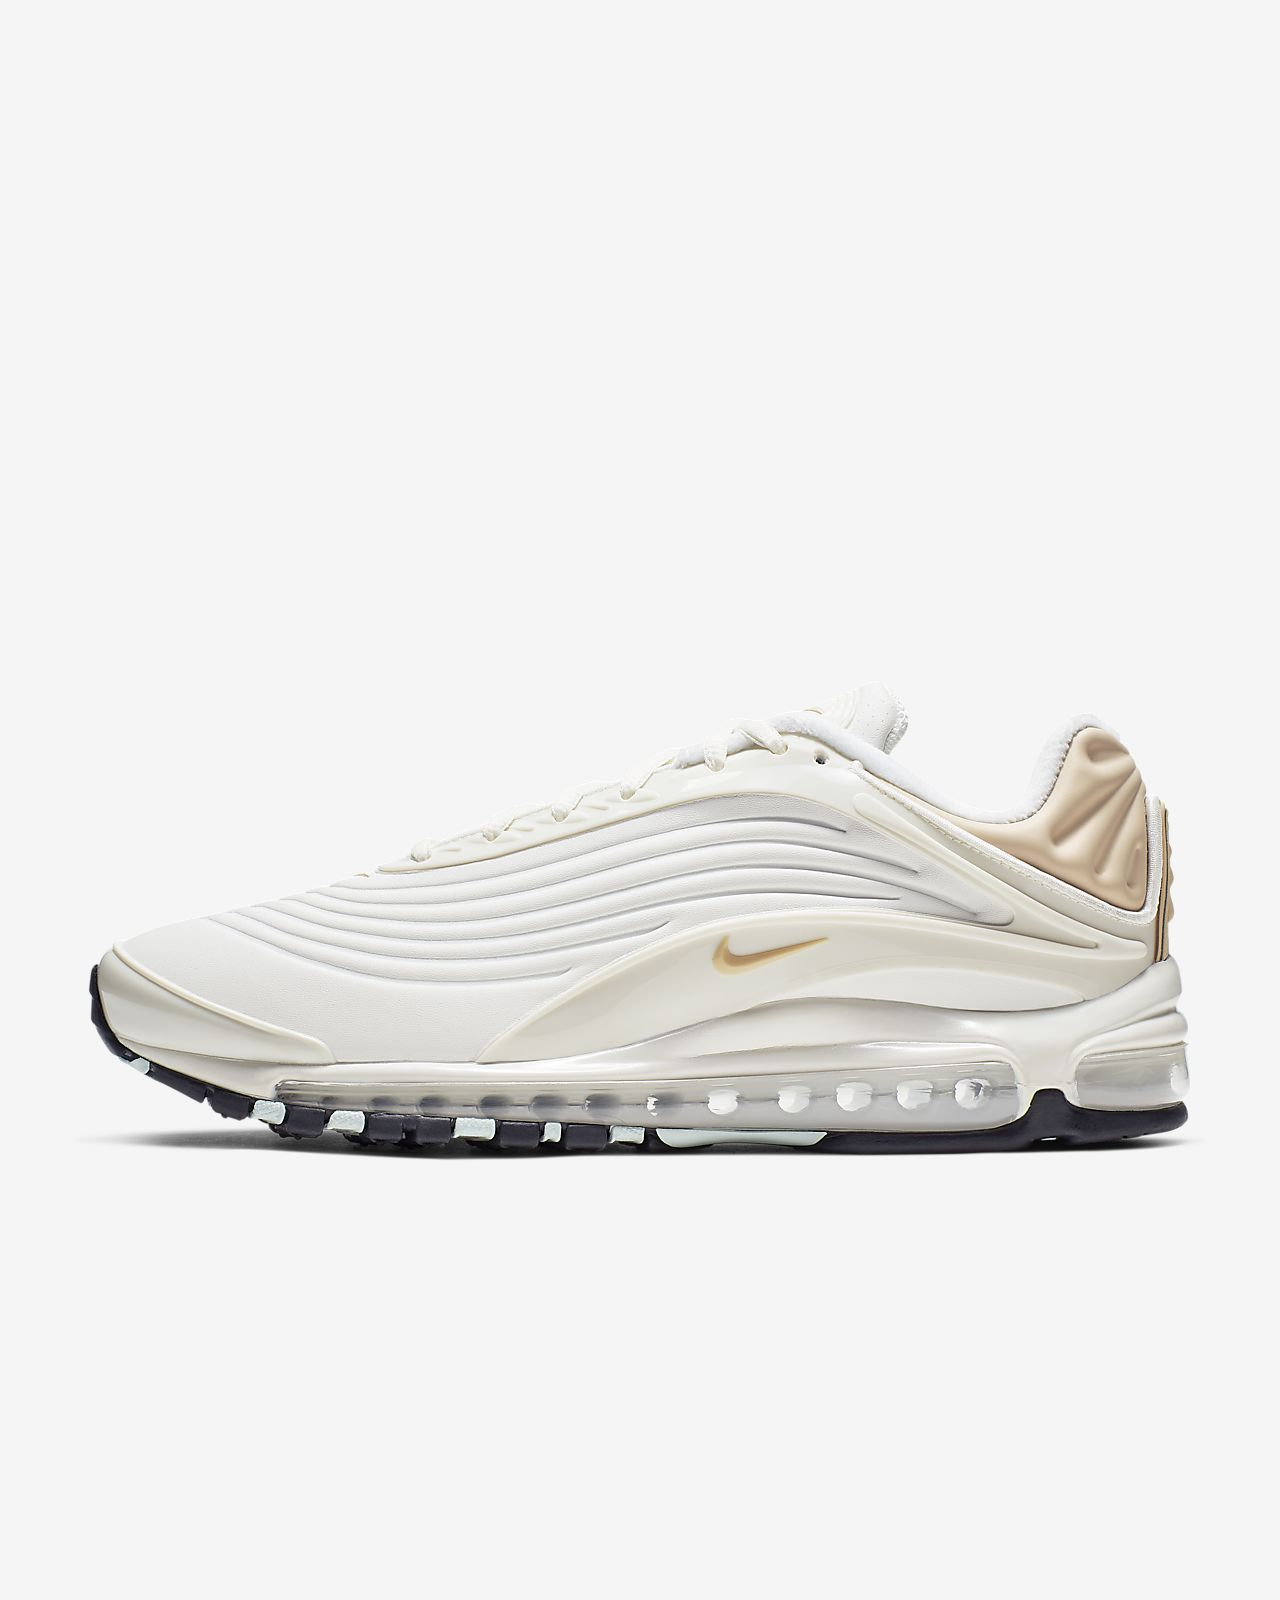 best website a296a b559f ... Sko Nike Air Max Deluxe SE för män